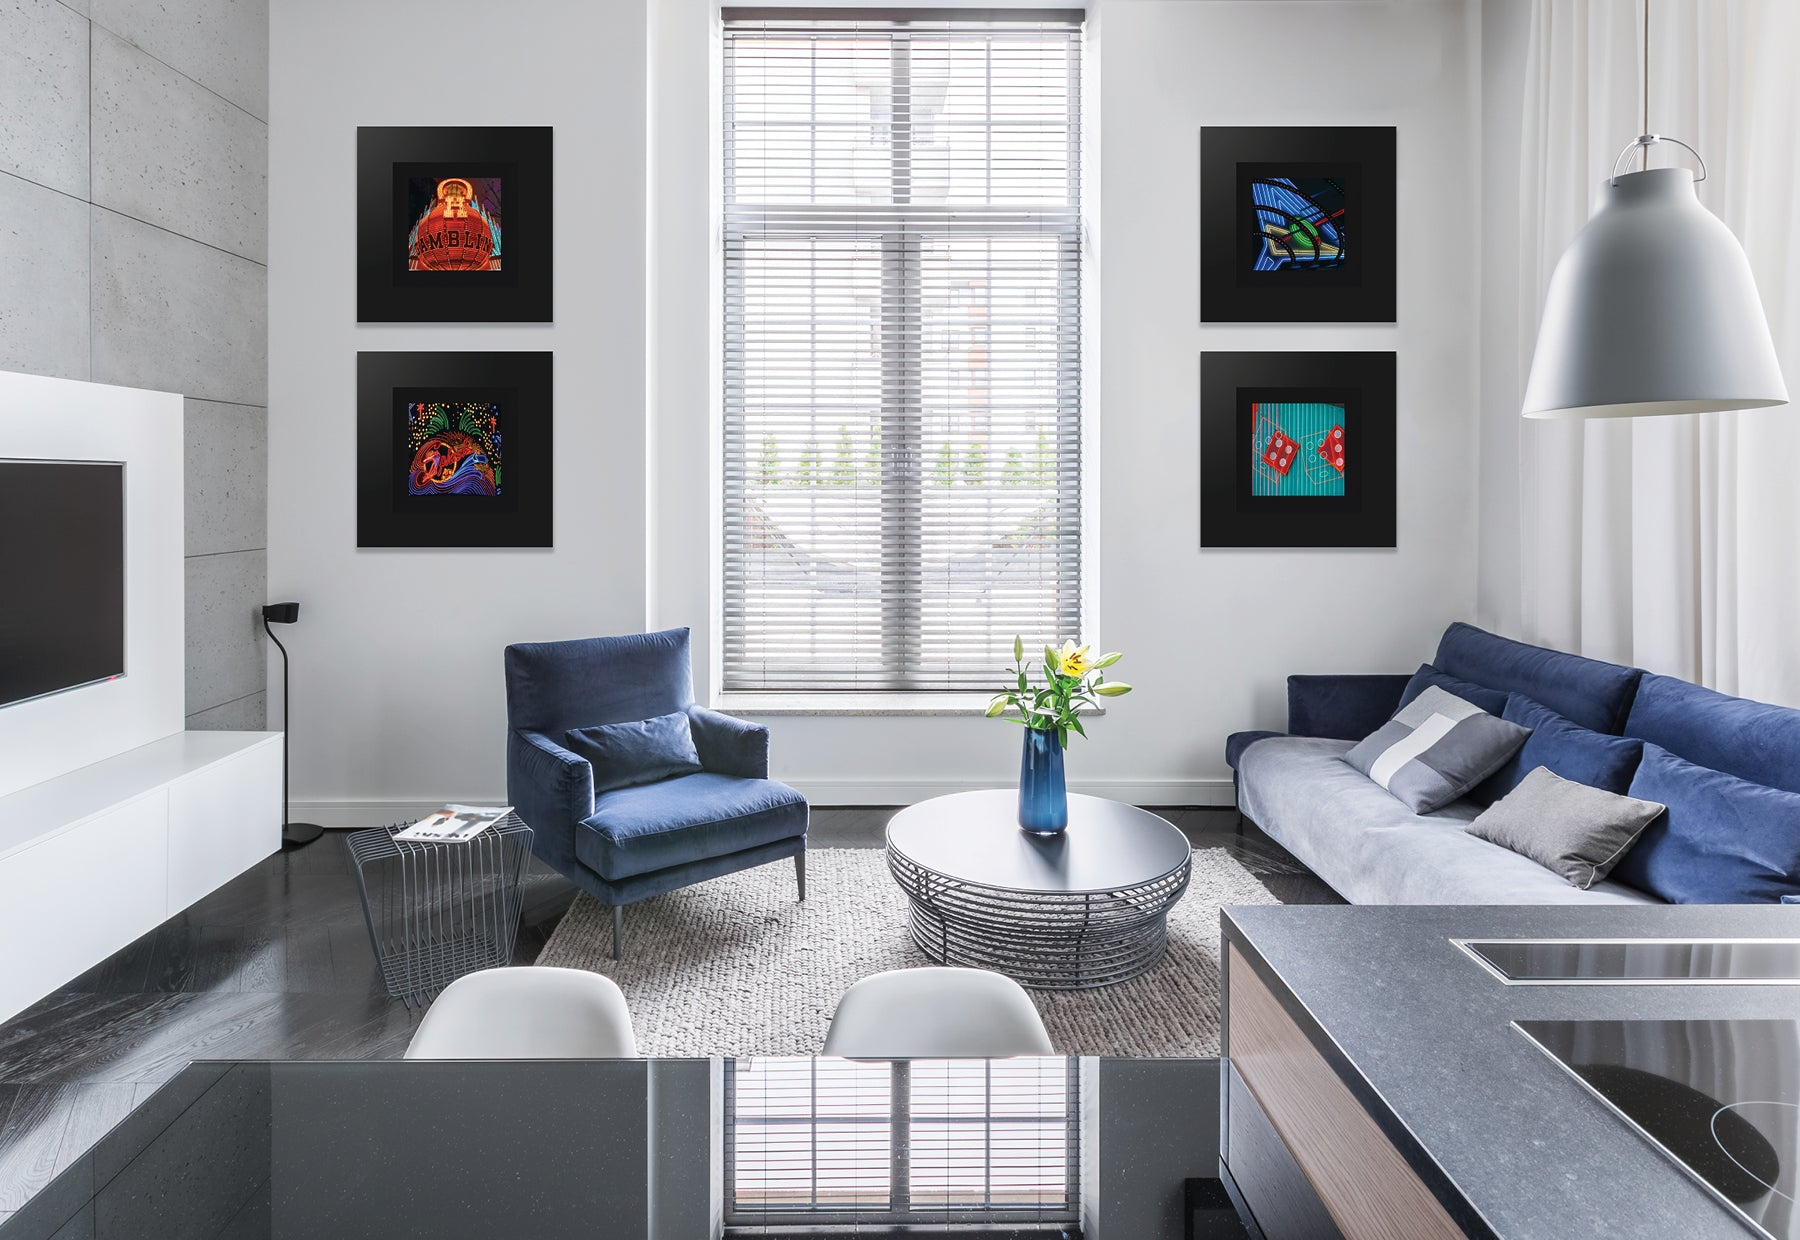 Modern home interior with blue couch and chair featuring four square photographs of Las Vegas landmarks by Peter Lik in matte black frames and black liners